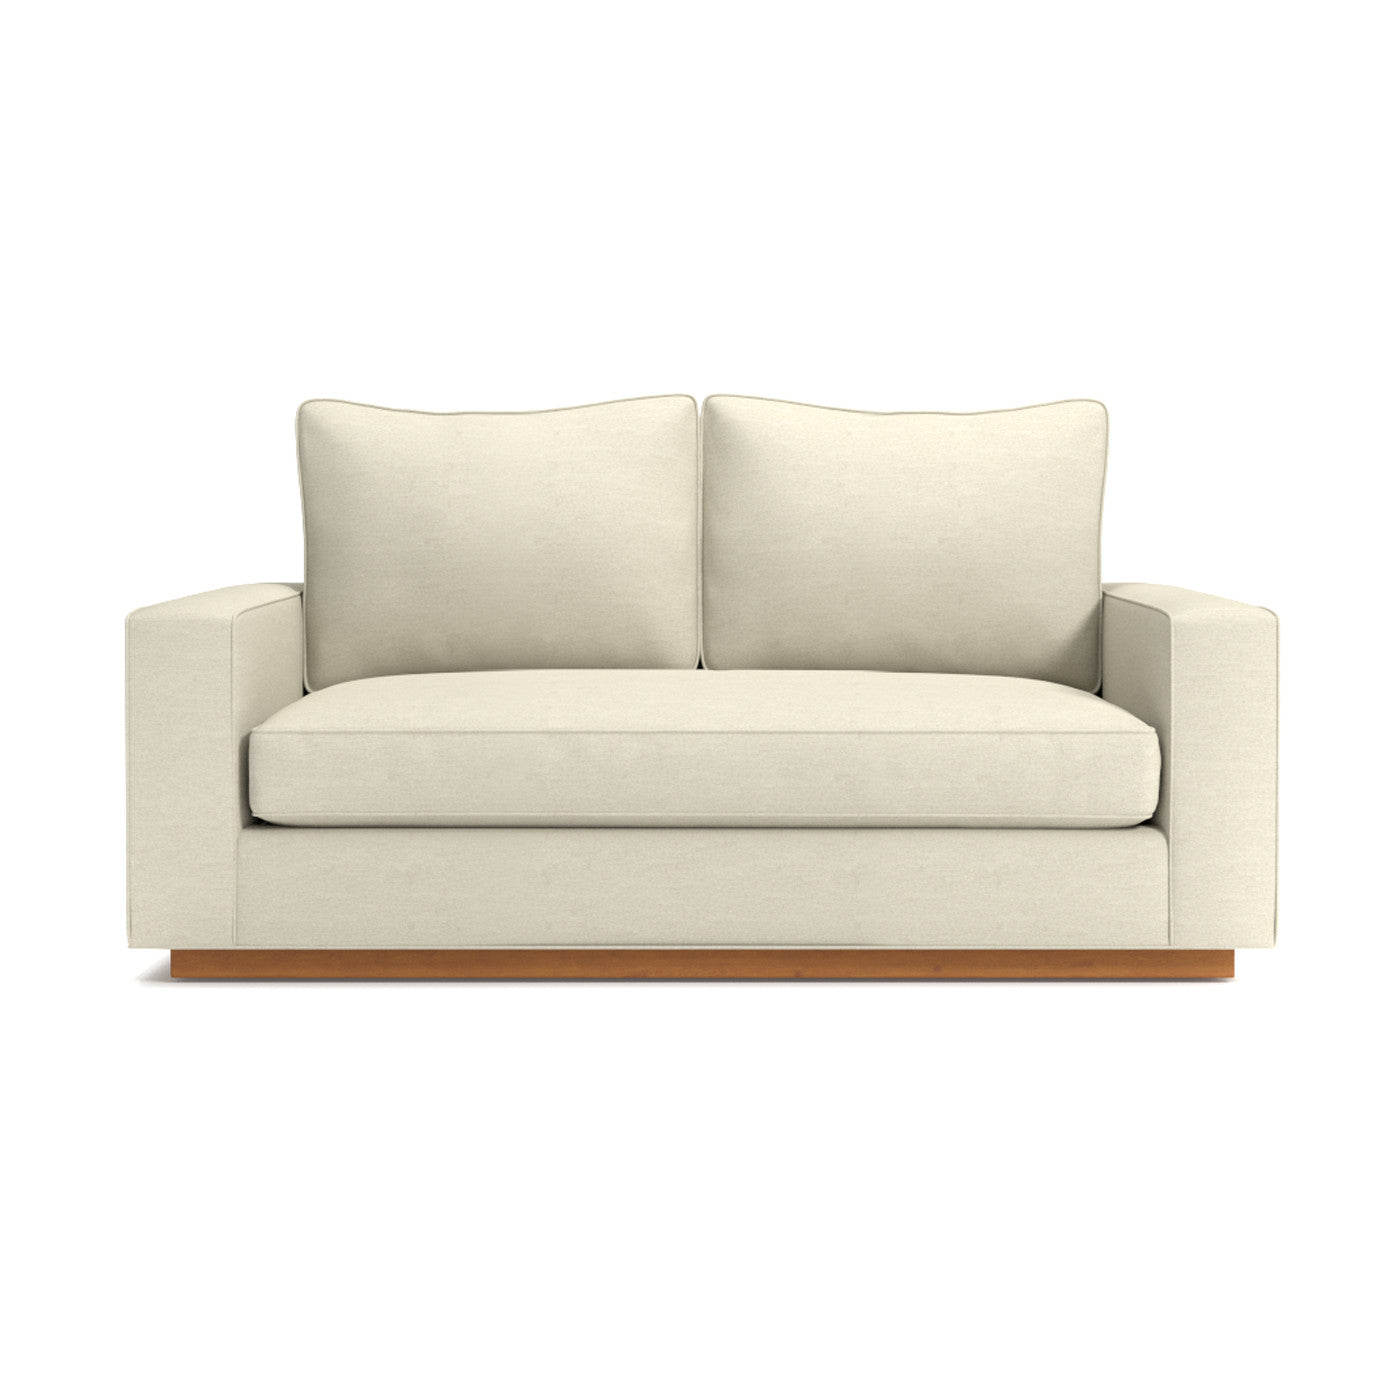 Harper Apartment Size Sofa from Kyle Schuneman - Apt2B